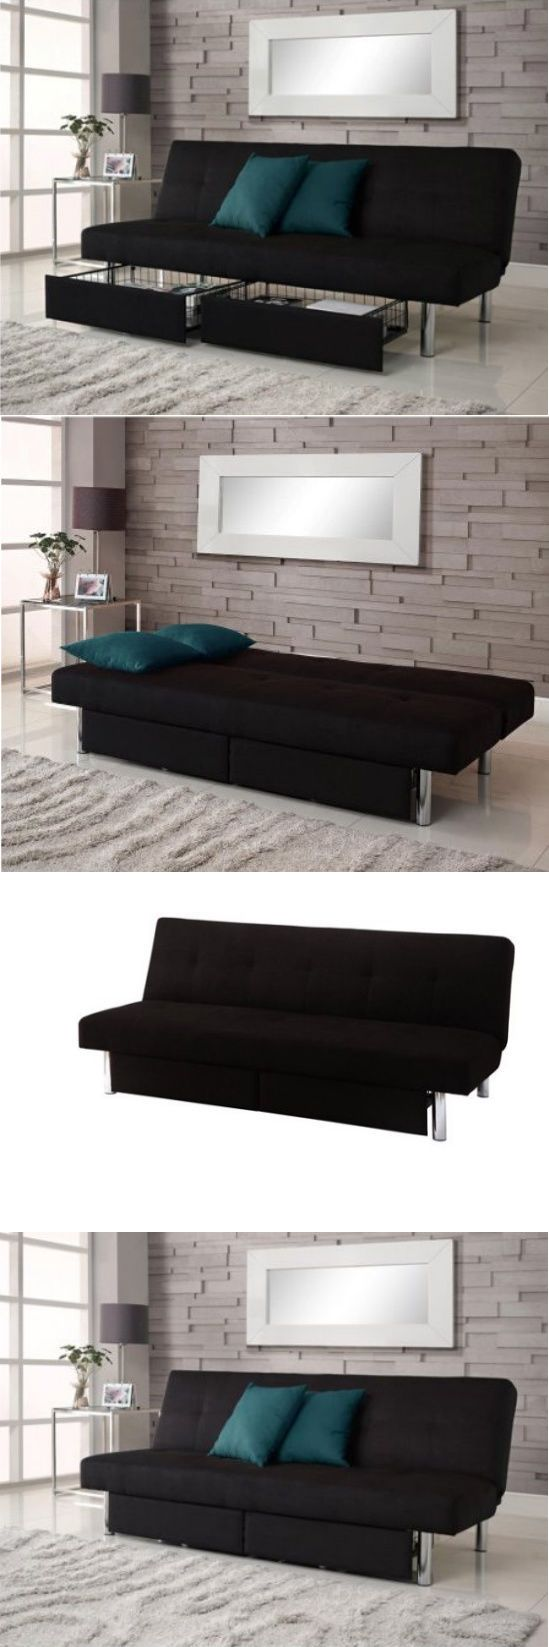 Sofa bed with storage underneath - Futons Frames And Covers 131579 Futon Frame And Mattress Included Sofa Beds For Small Spaces